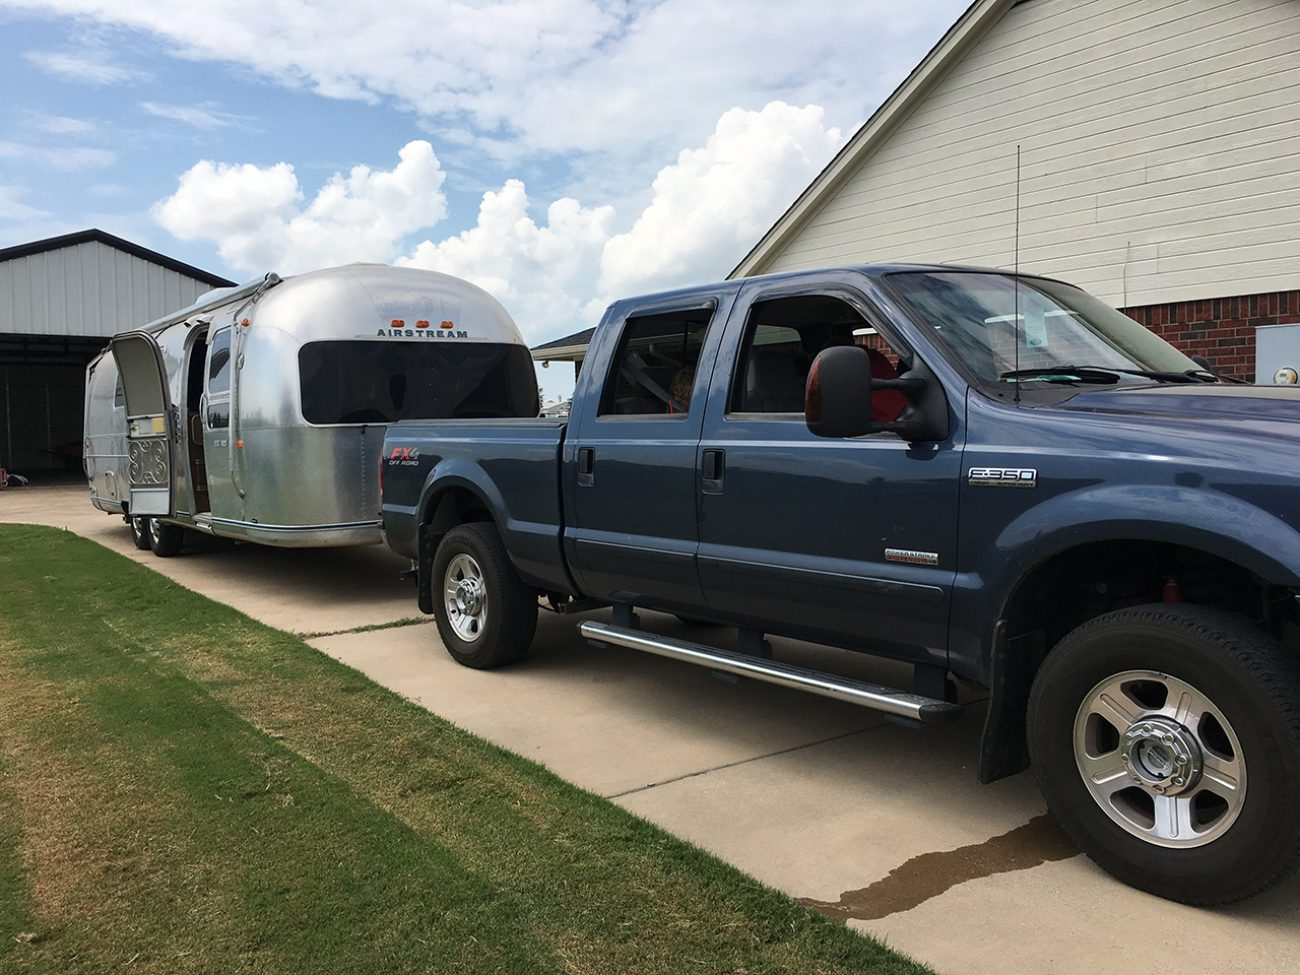 Picking Up Airstream